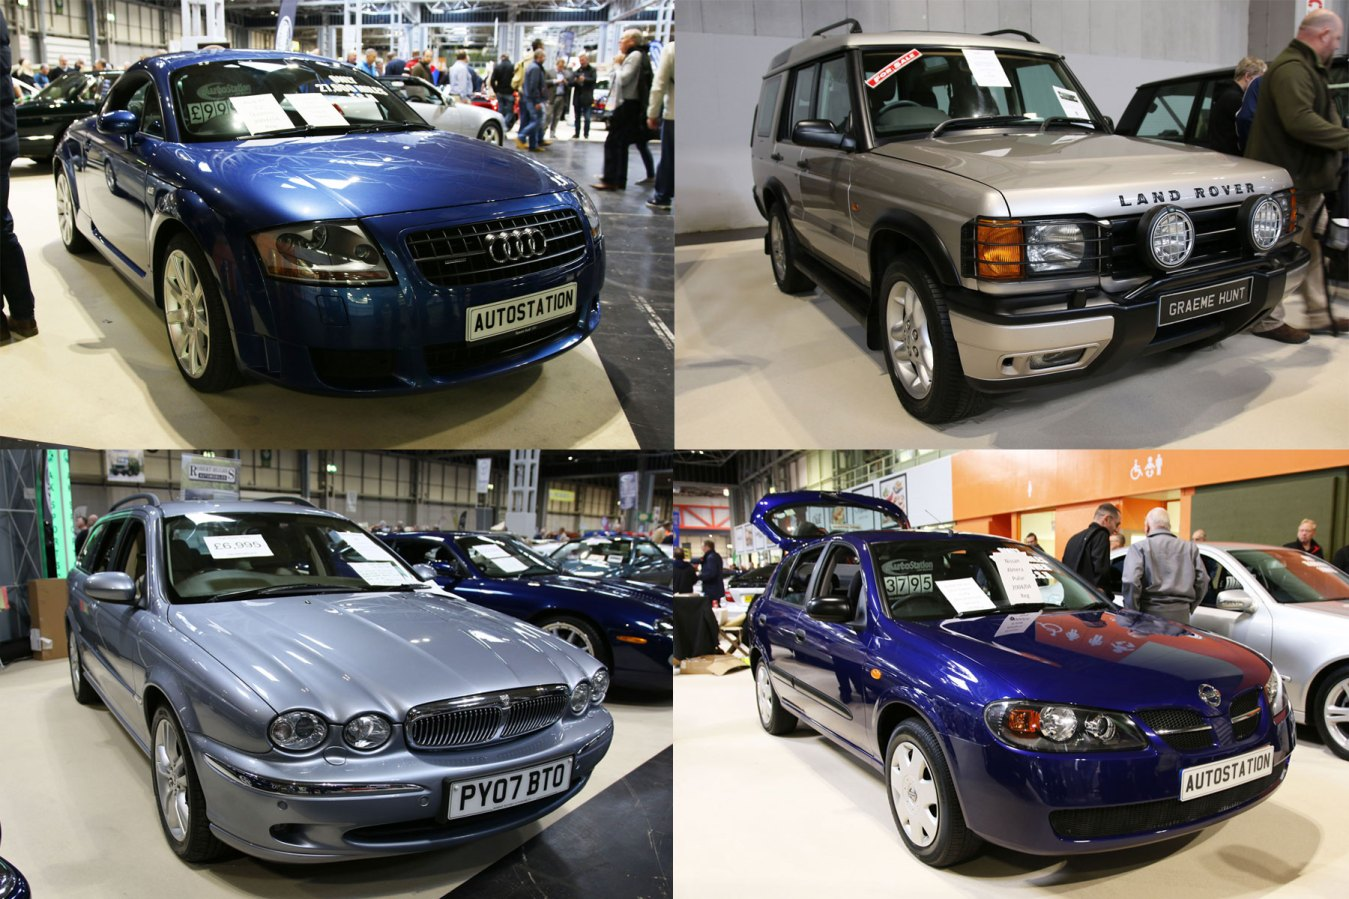 7 expensive future classics at the NEC Classic Motor Show